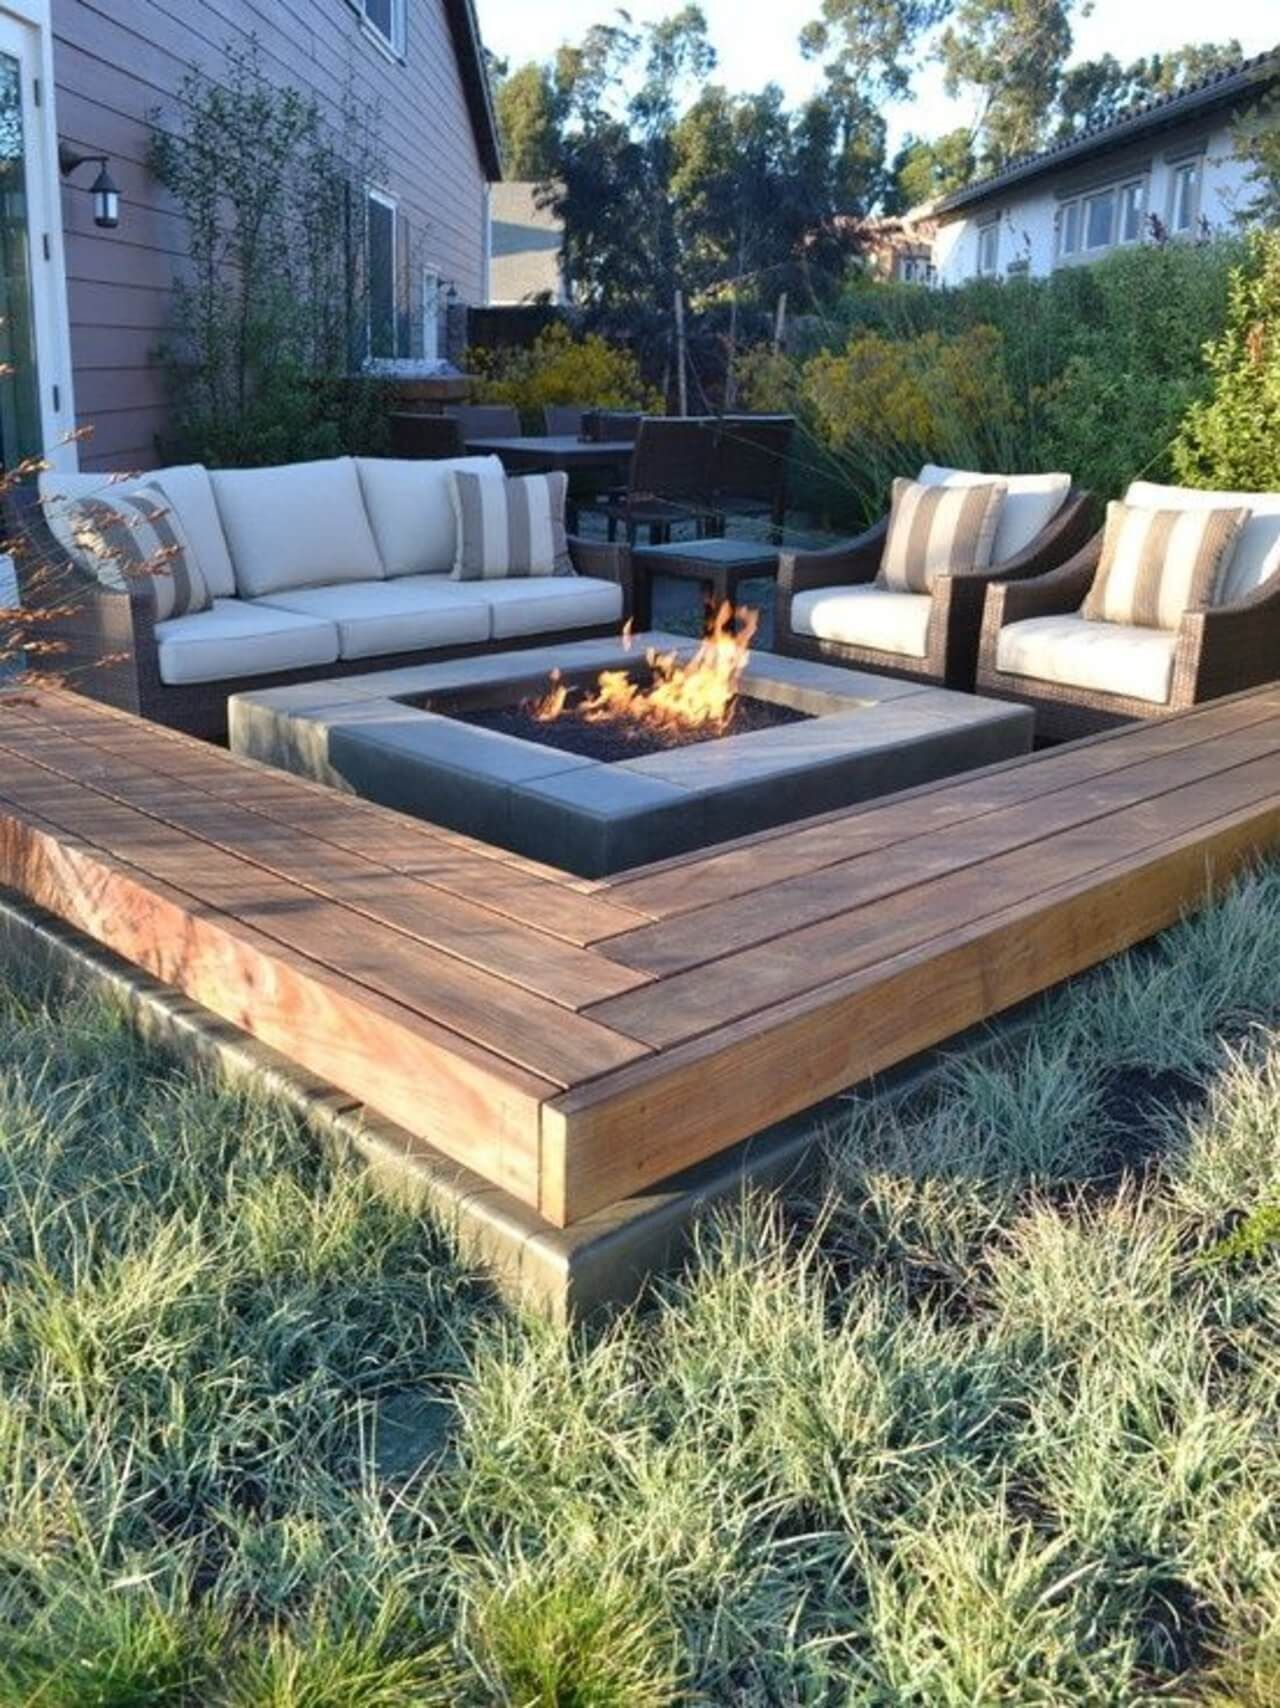 Pin On Fire Pit Seating